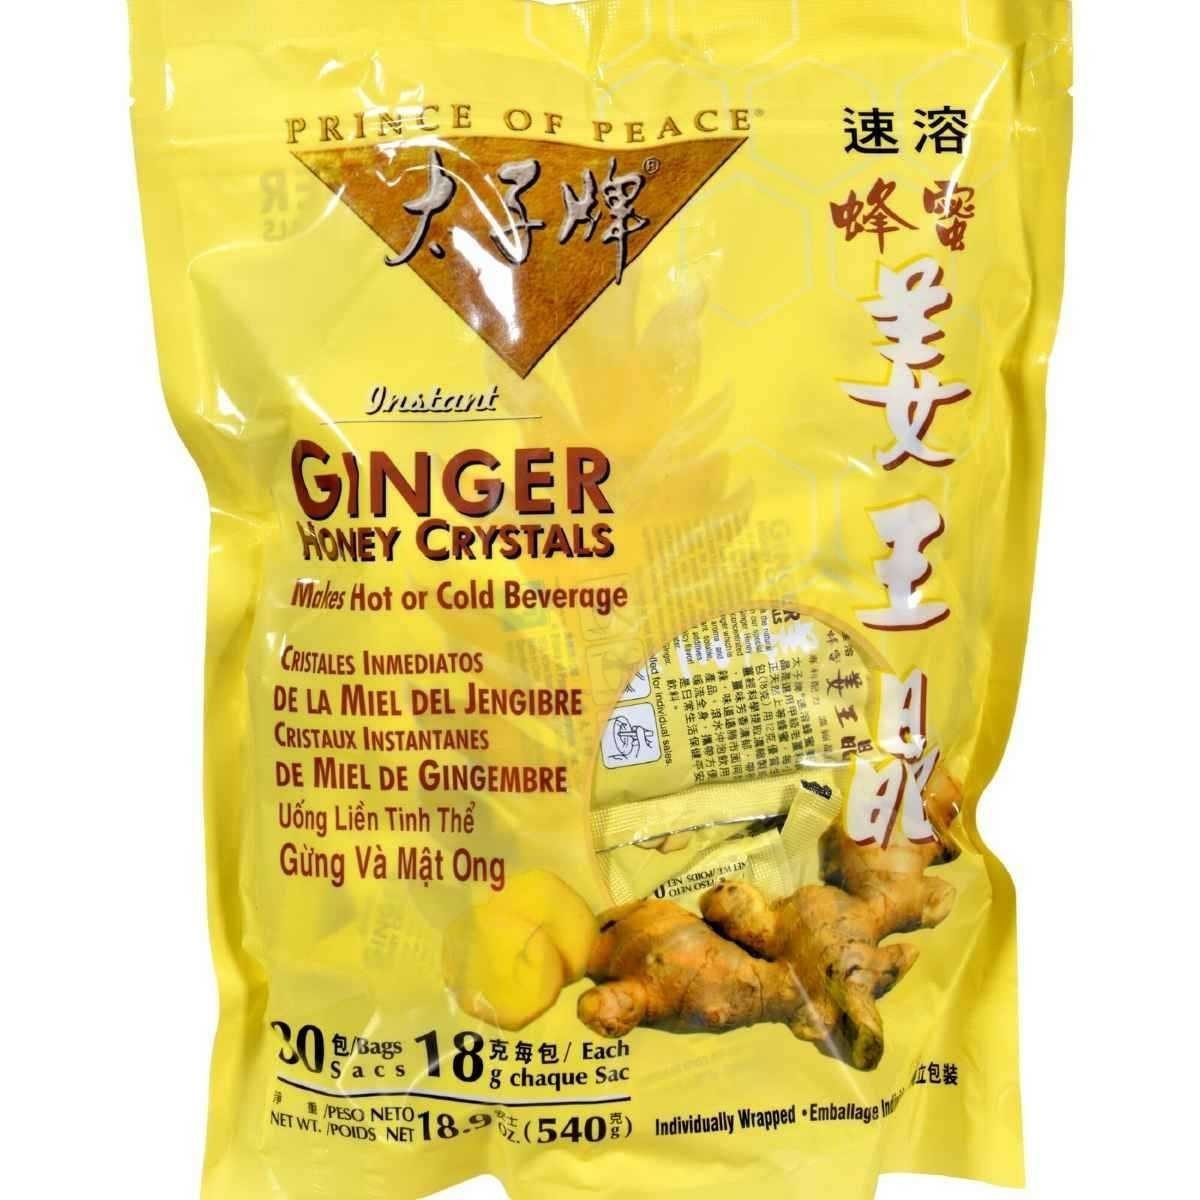 Prince of Peace Ginger Ginger Honey Crystals 30 (0.63 oz.) (a) - 2pc, [wellica]